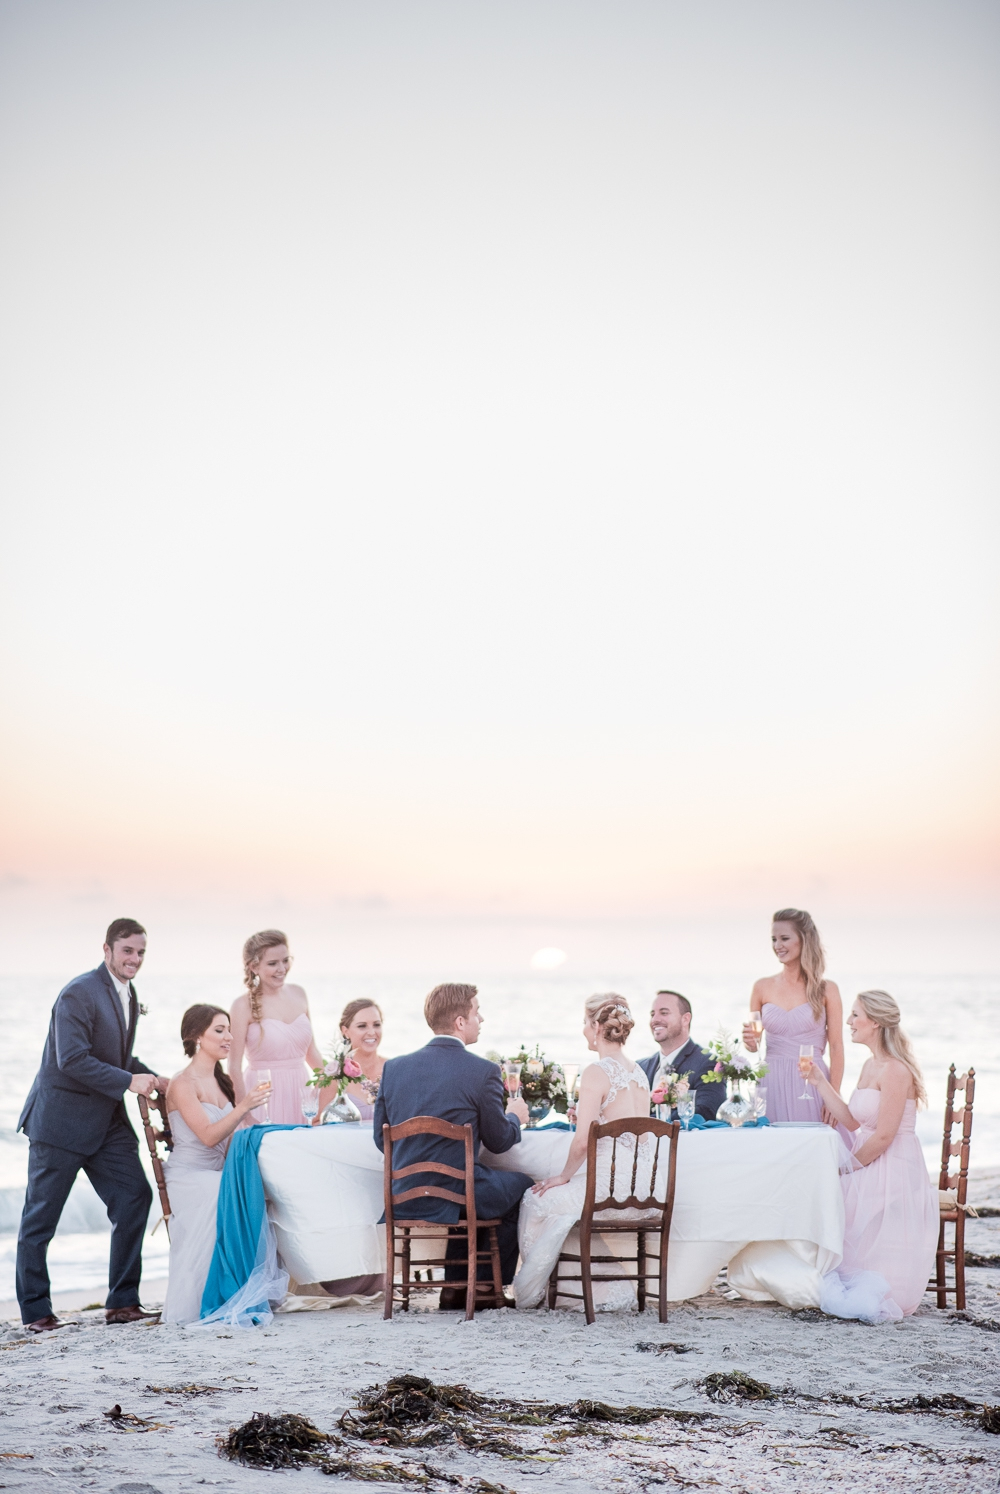 2016 HLM Wedding Beach Shoot 21.jpg